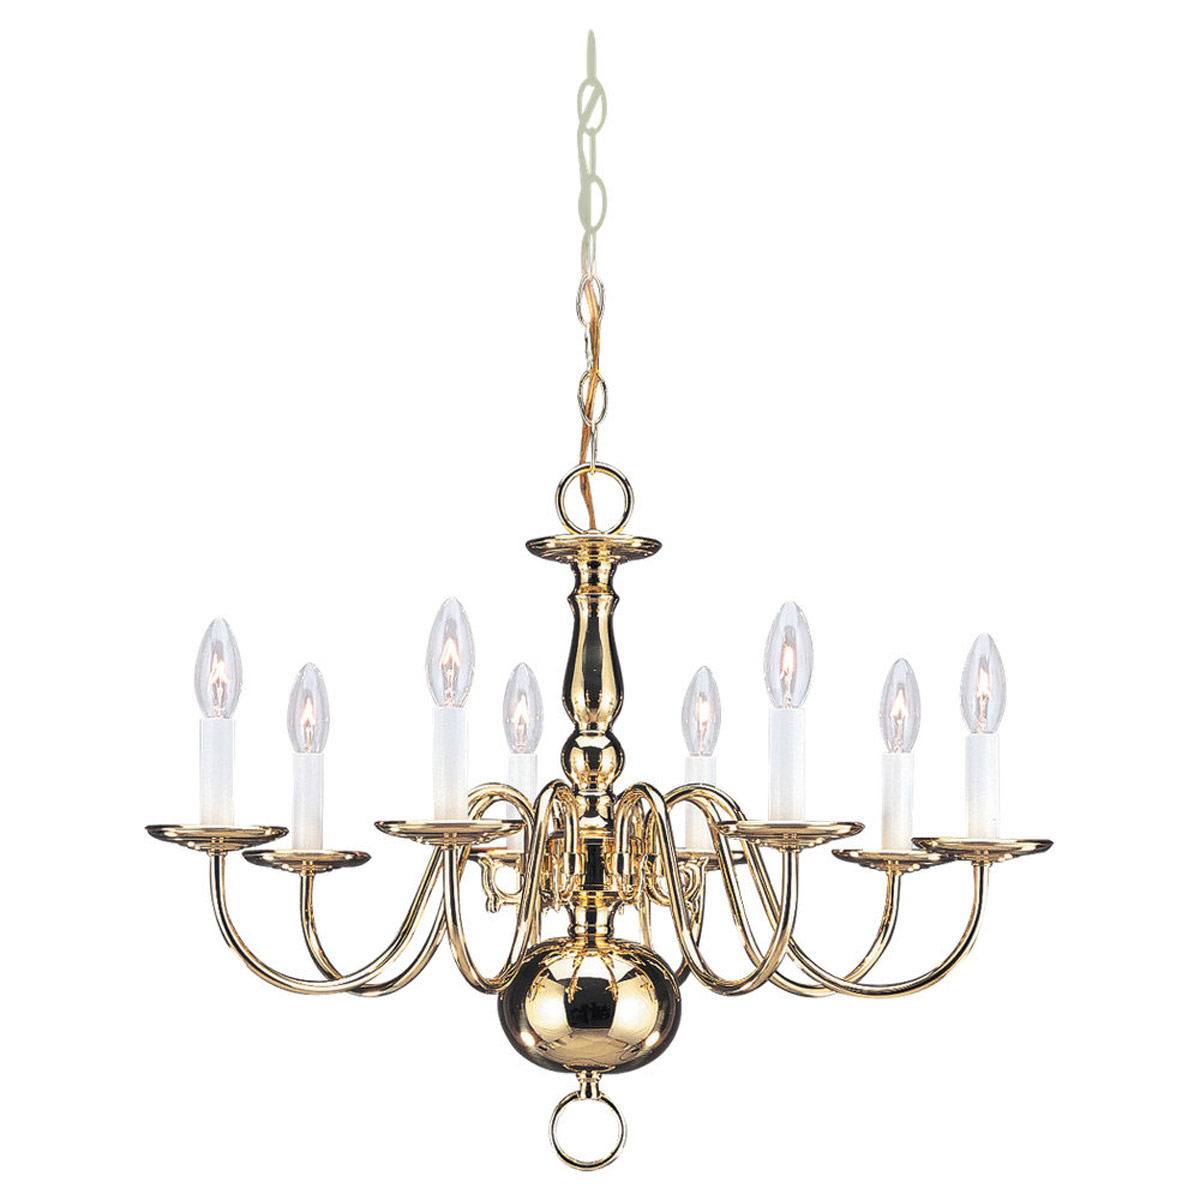 Sea Gull Lighting Traditional 8 Light Chandelier in Polished Brass 3412-02 photo